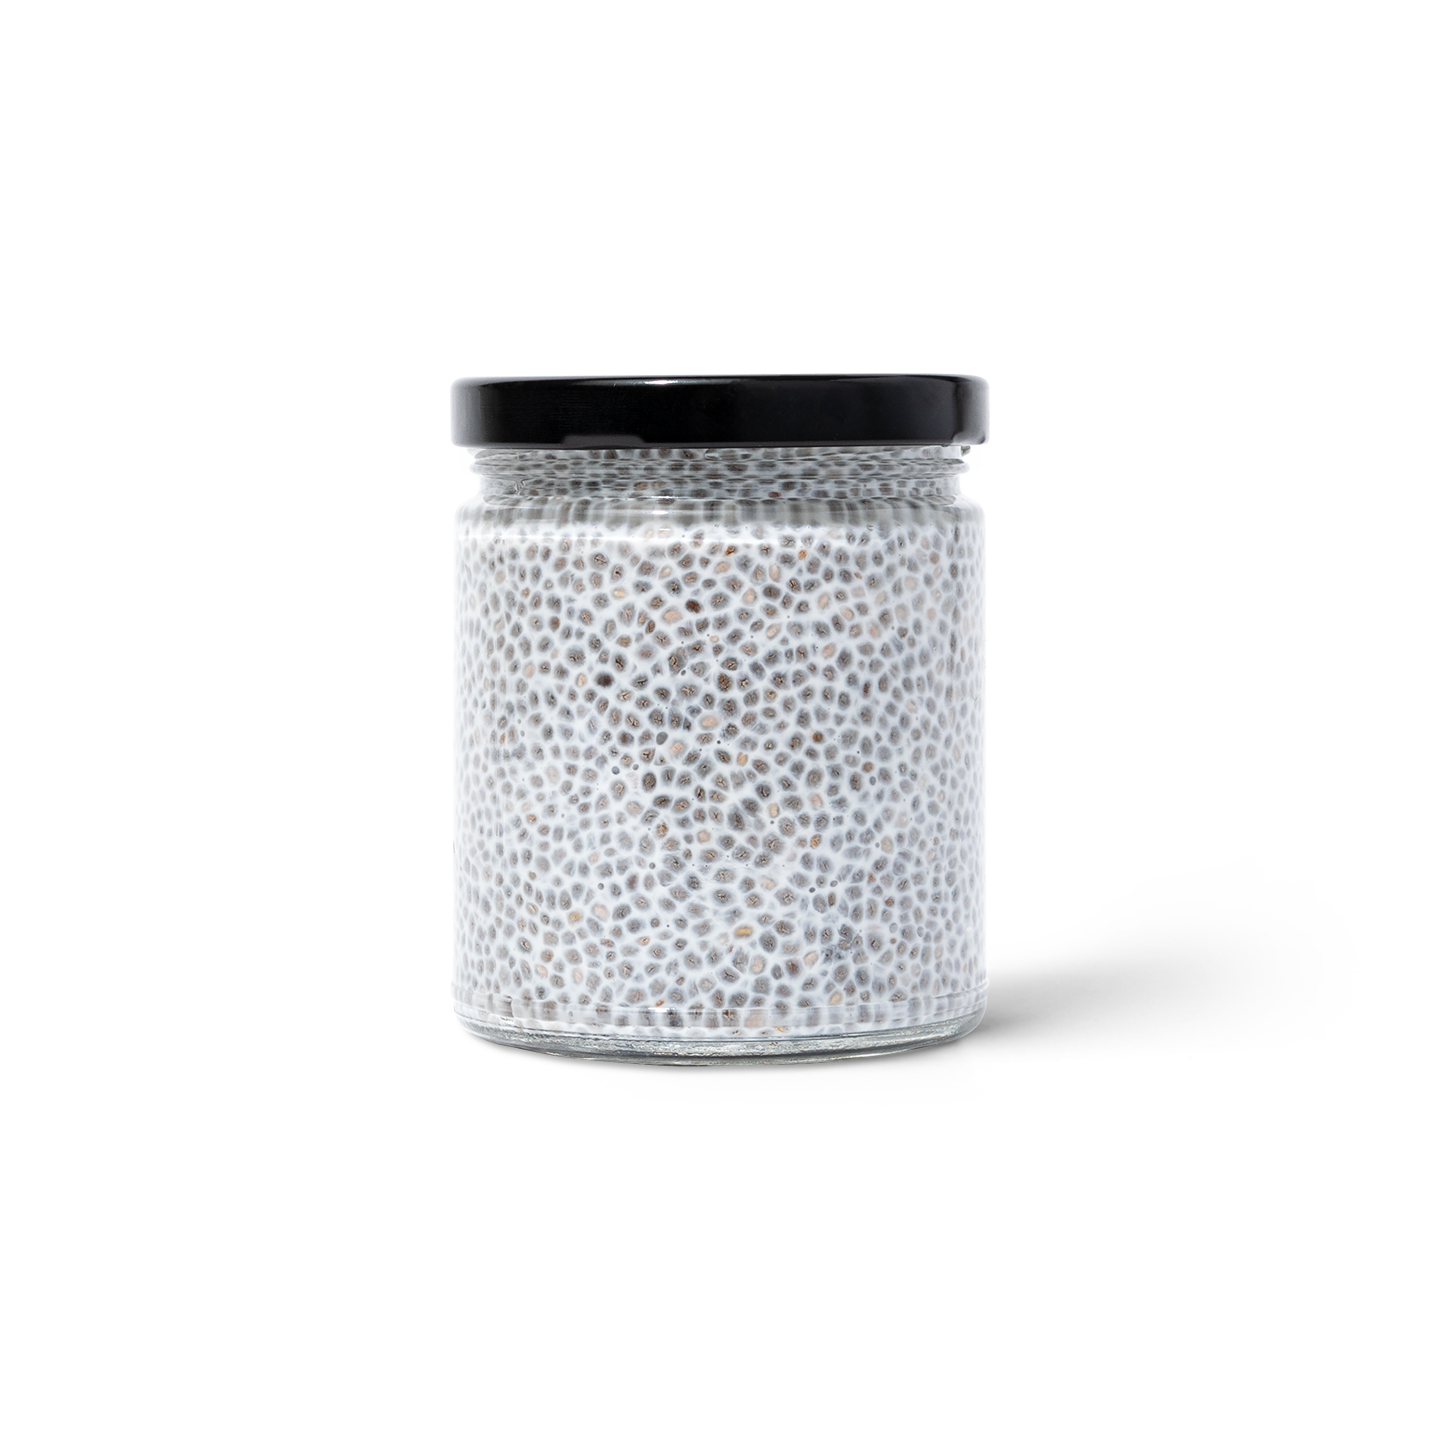 Coconut Banana Chia Pudding product image